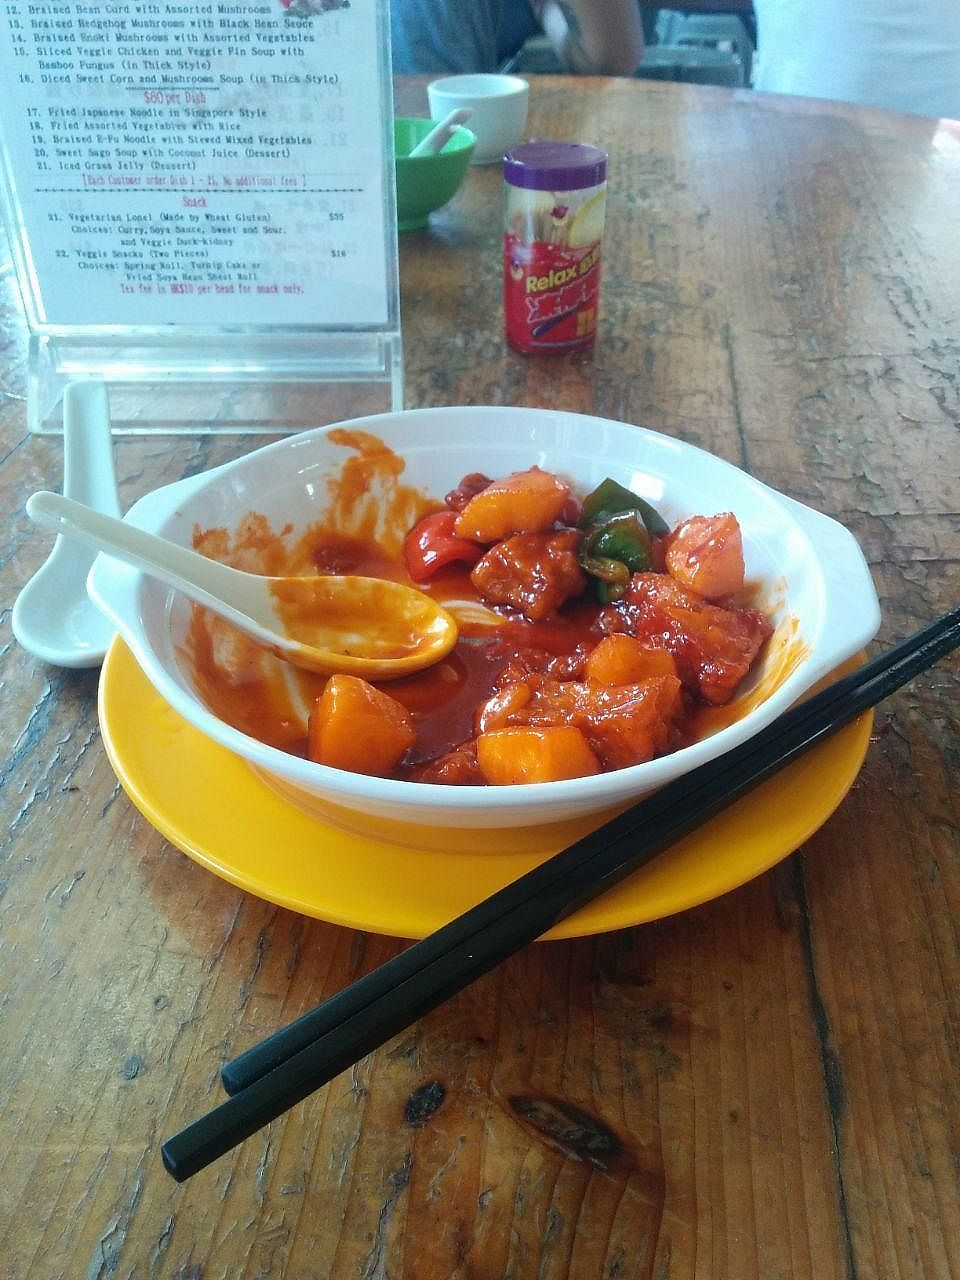 "Photo of Ten Thousand Buddhas Monastery Vegetarian Canteen  by <a href=""/members/profile/FlokiTheCat"">FlokiTheCat</a> <br/>Ribs in sour and sweet sauce <br/> June 27, 2017  - <a href='/contact/abuse/image/37398/273933'>Report</a>"